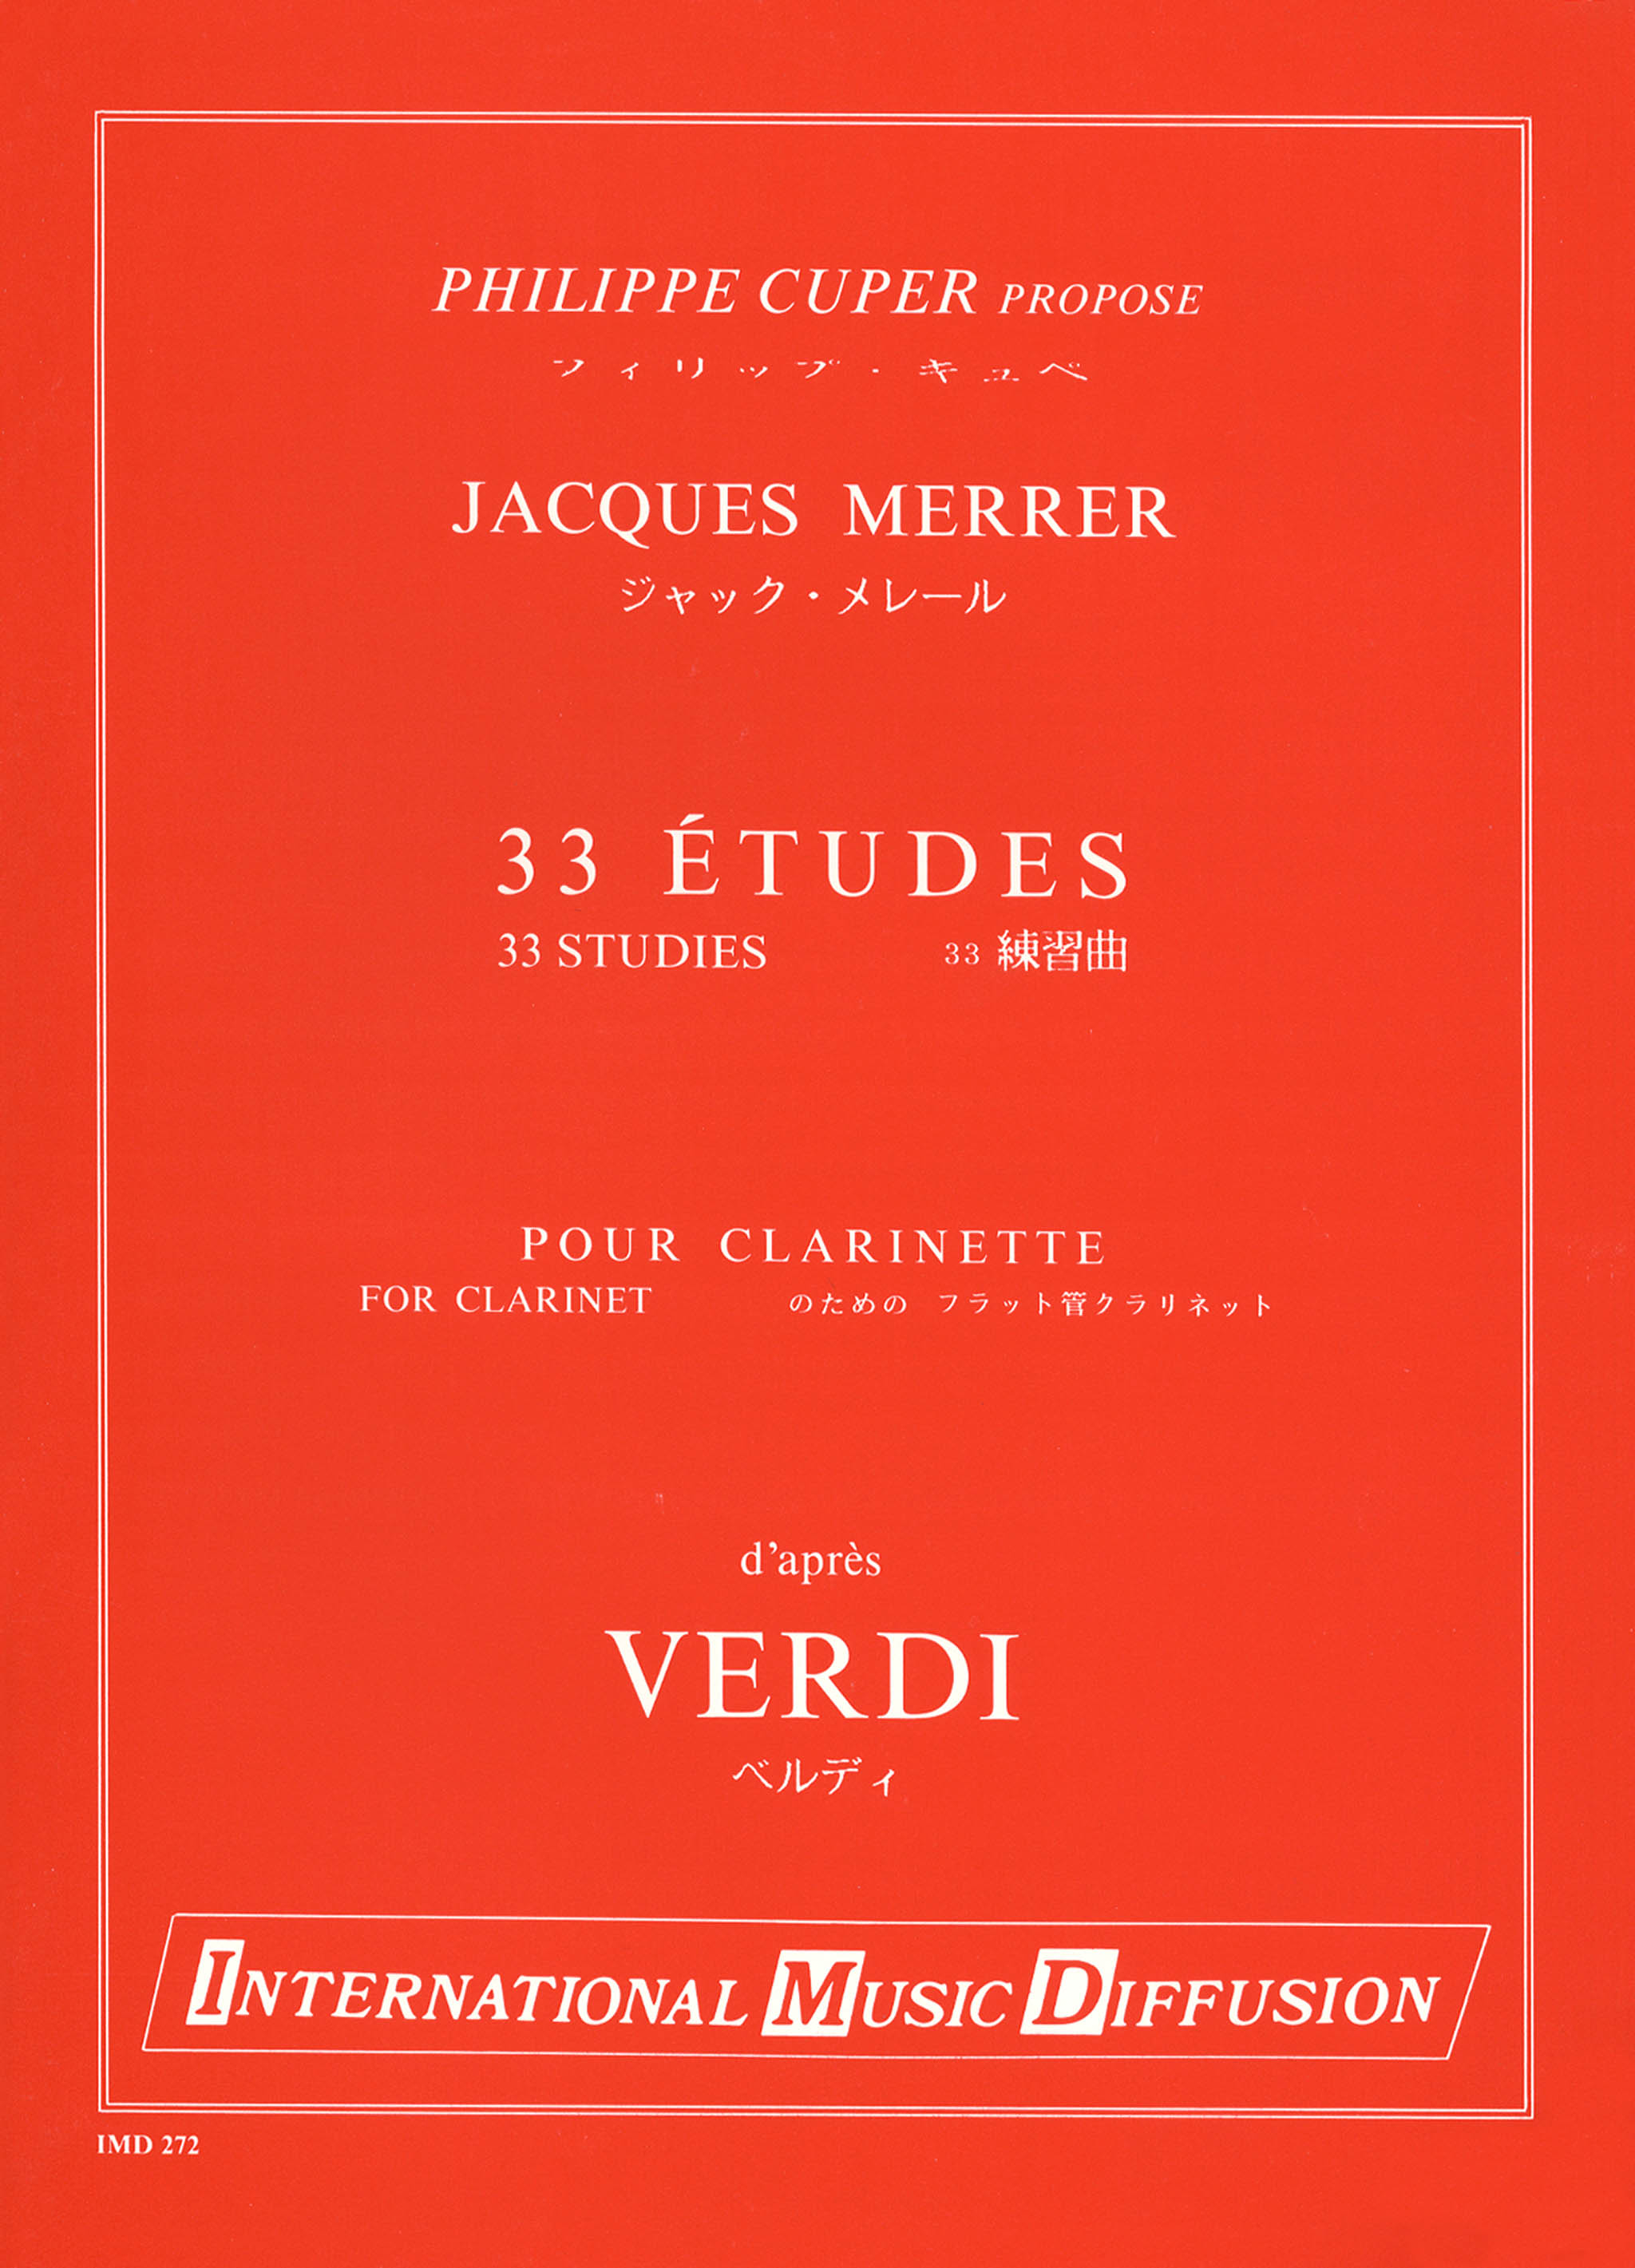 33 Études after Verdi Cover